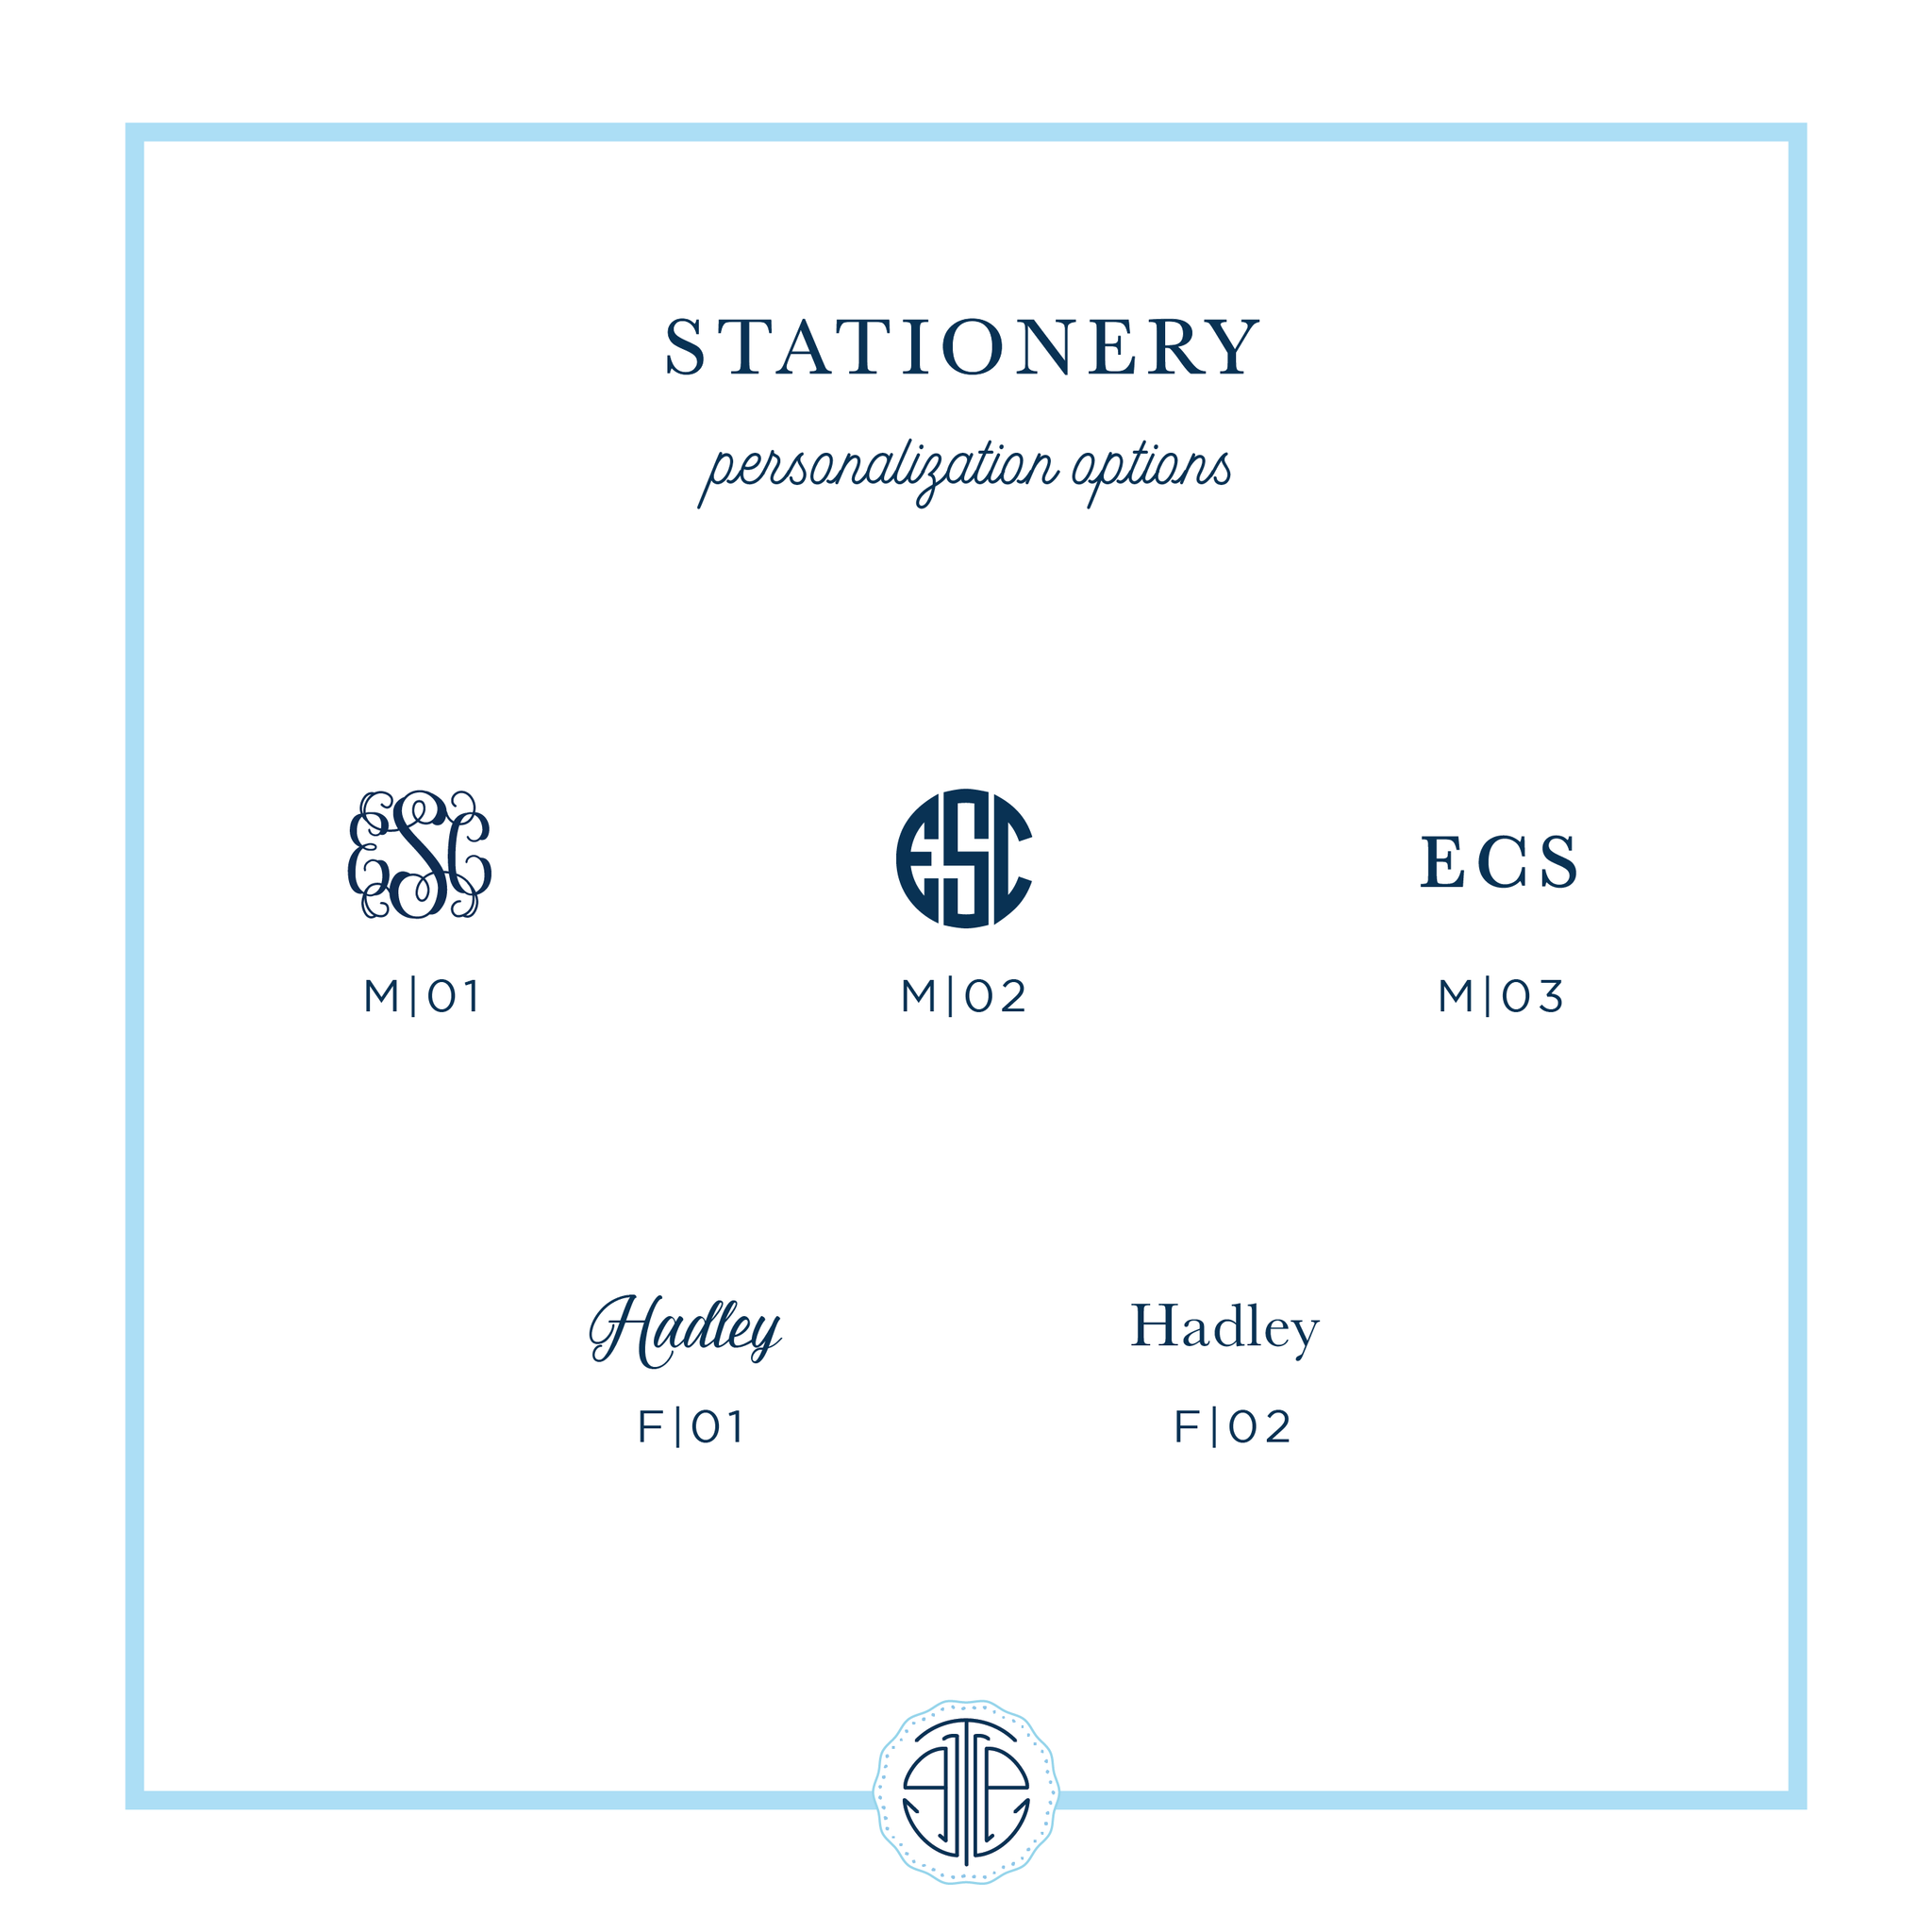 stationery personalization options